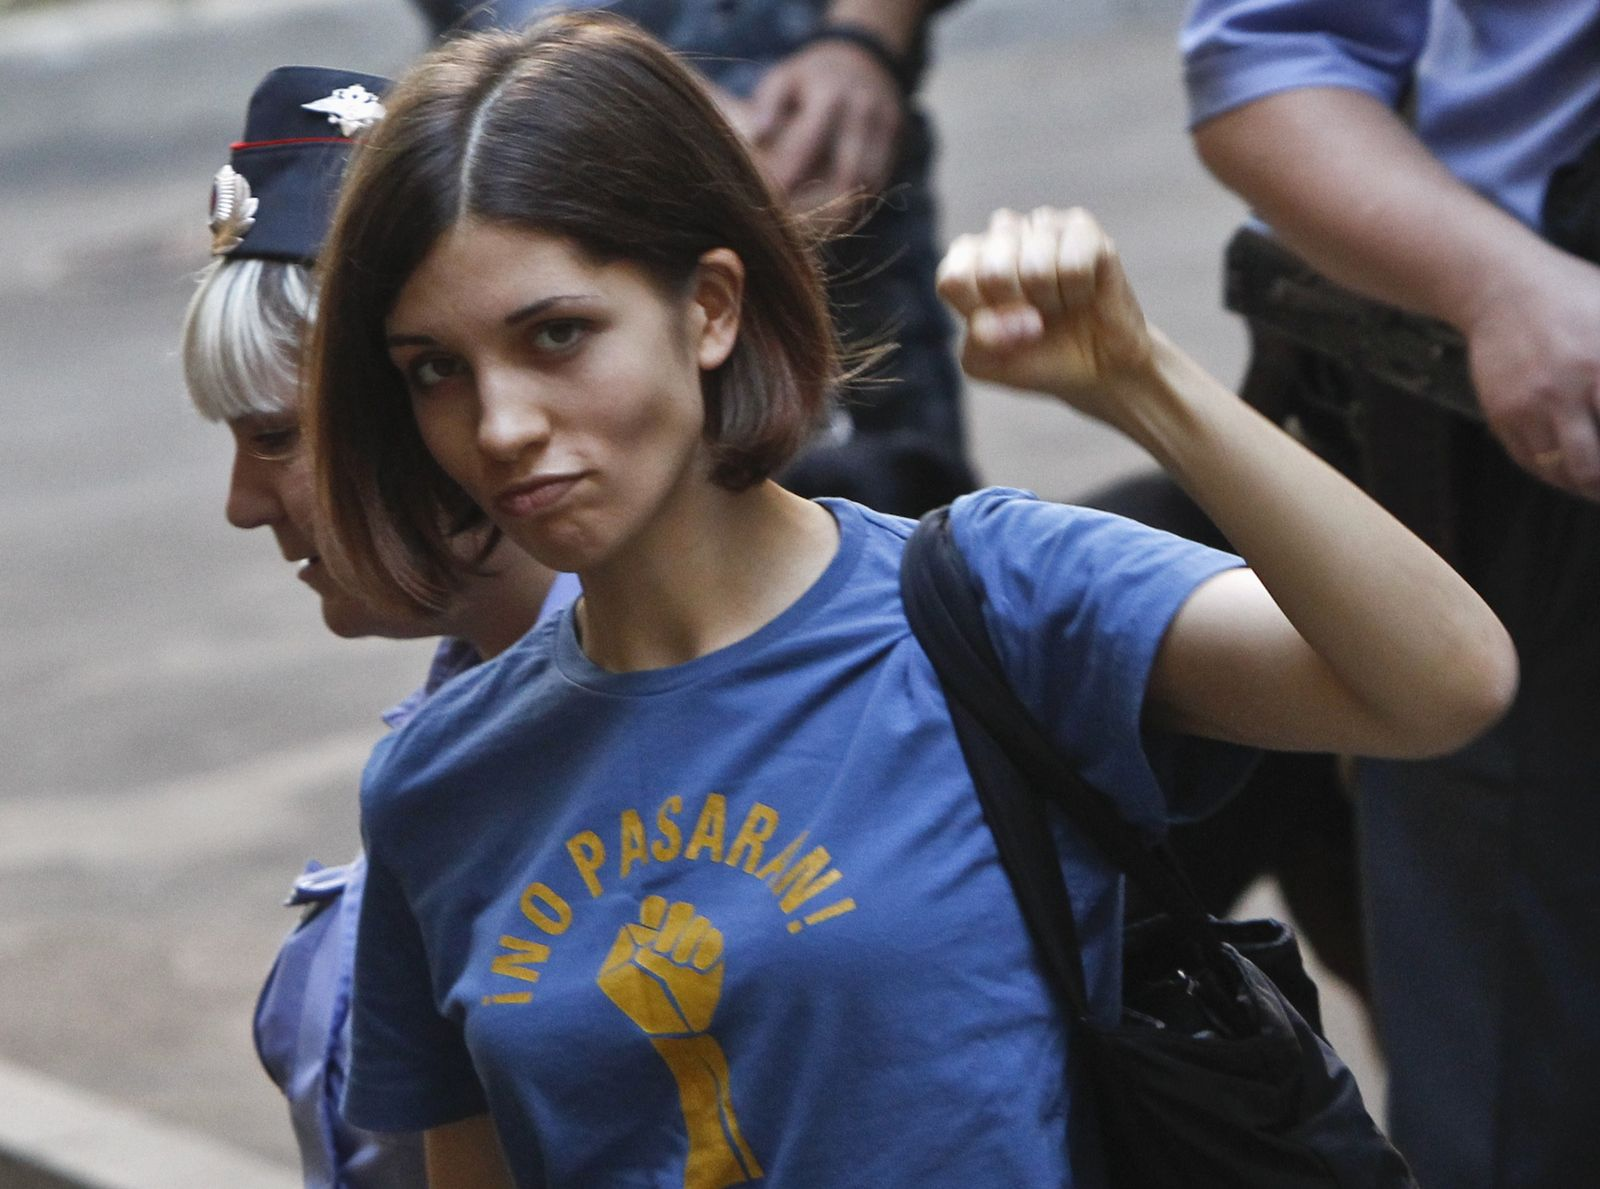 """Tolokonnikova, a member of the female punk band """"Pussy Riot"""", is escorted by police before a court hearing in Moscow"""